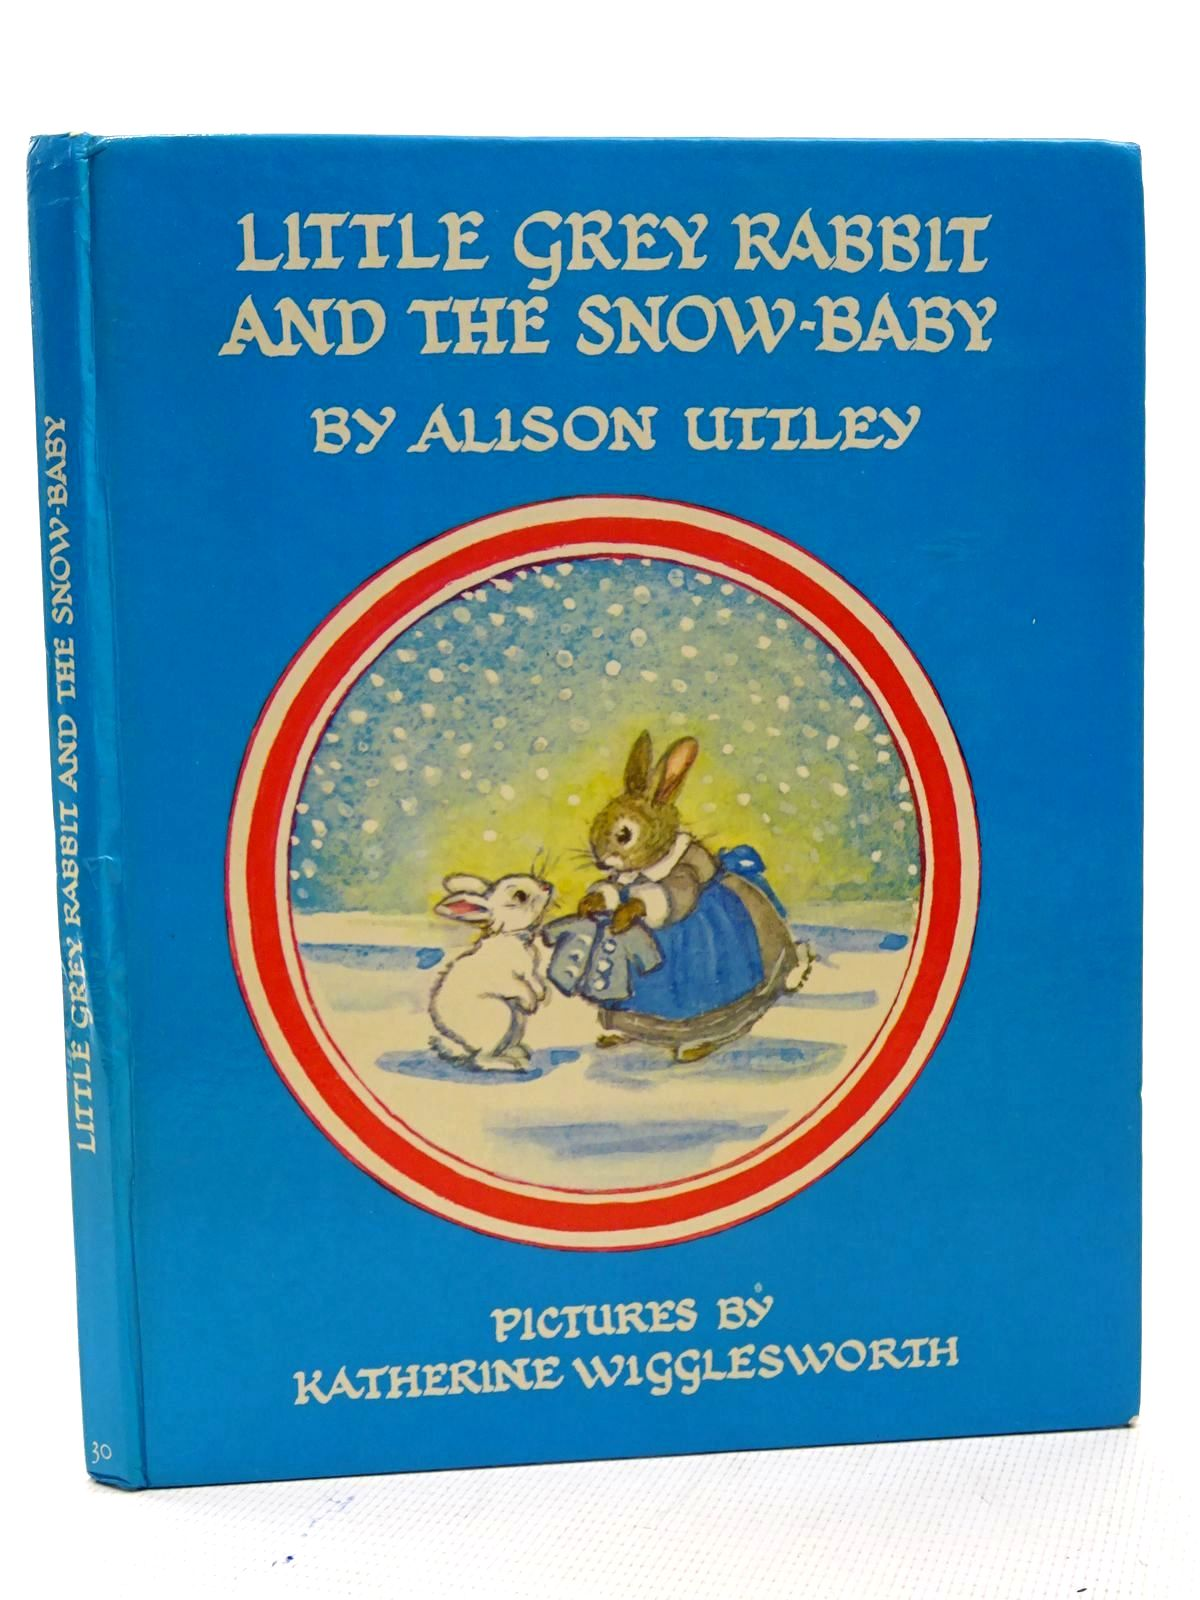 Photo of LITTLE GREY RABBIT AND THE SNOW-BABY written by Uttley, Alison illustrated by Wigglesworth, Katherine published by Collins (STOCK CODE: 2125437)  for sale by Stella & Rose's Books